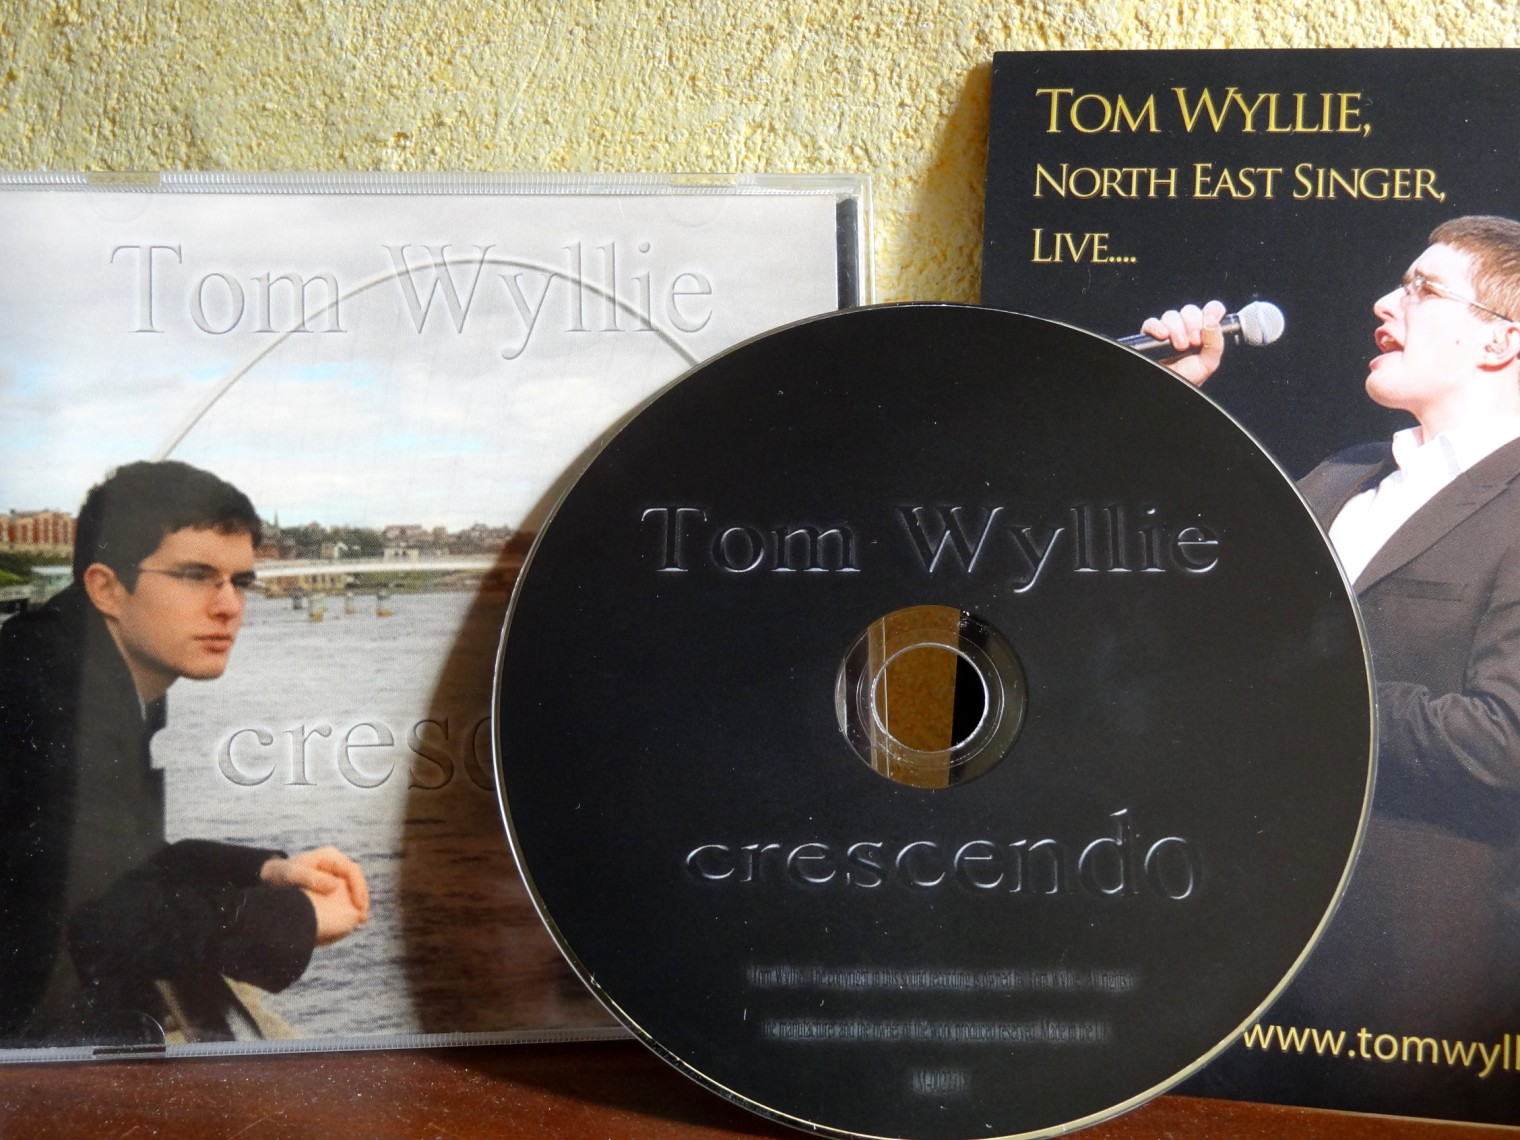 Tom Wyllie, singer of the nort east